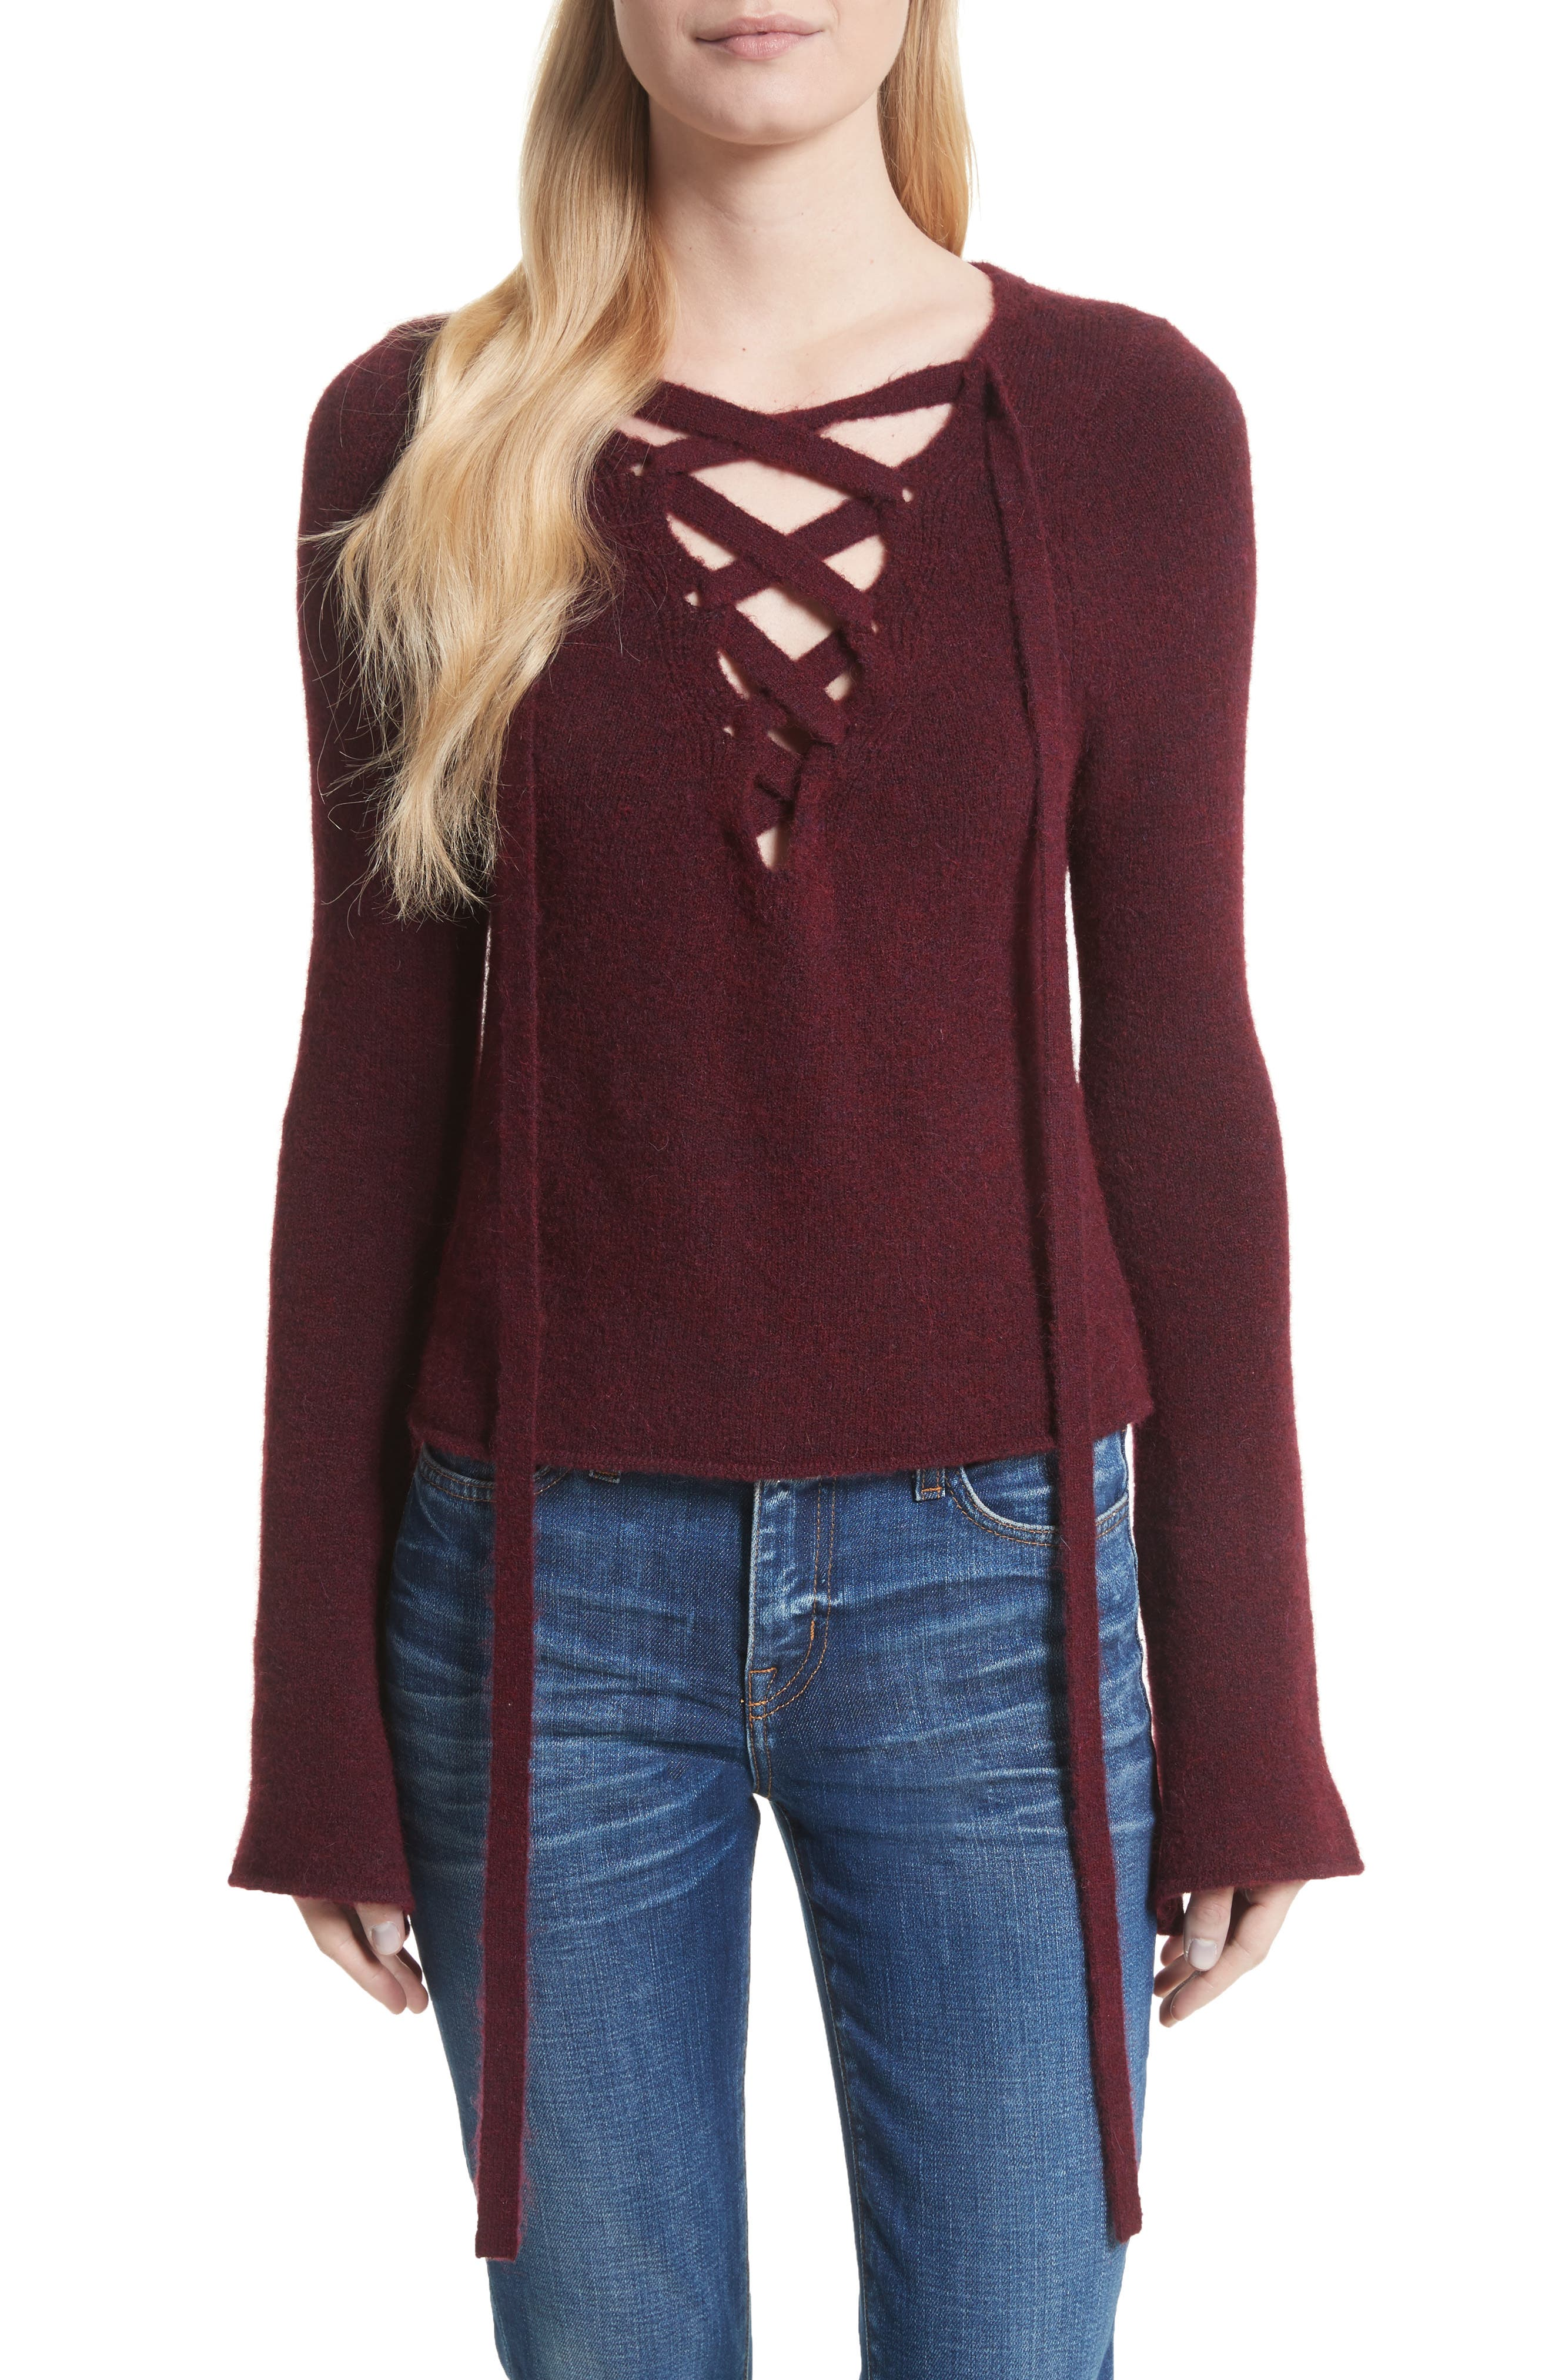 L'AGENCE Candela Lace-Up Sweater